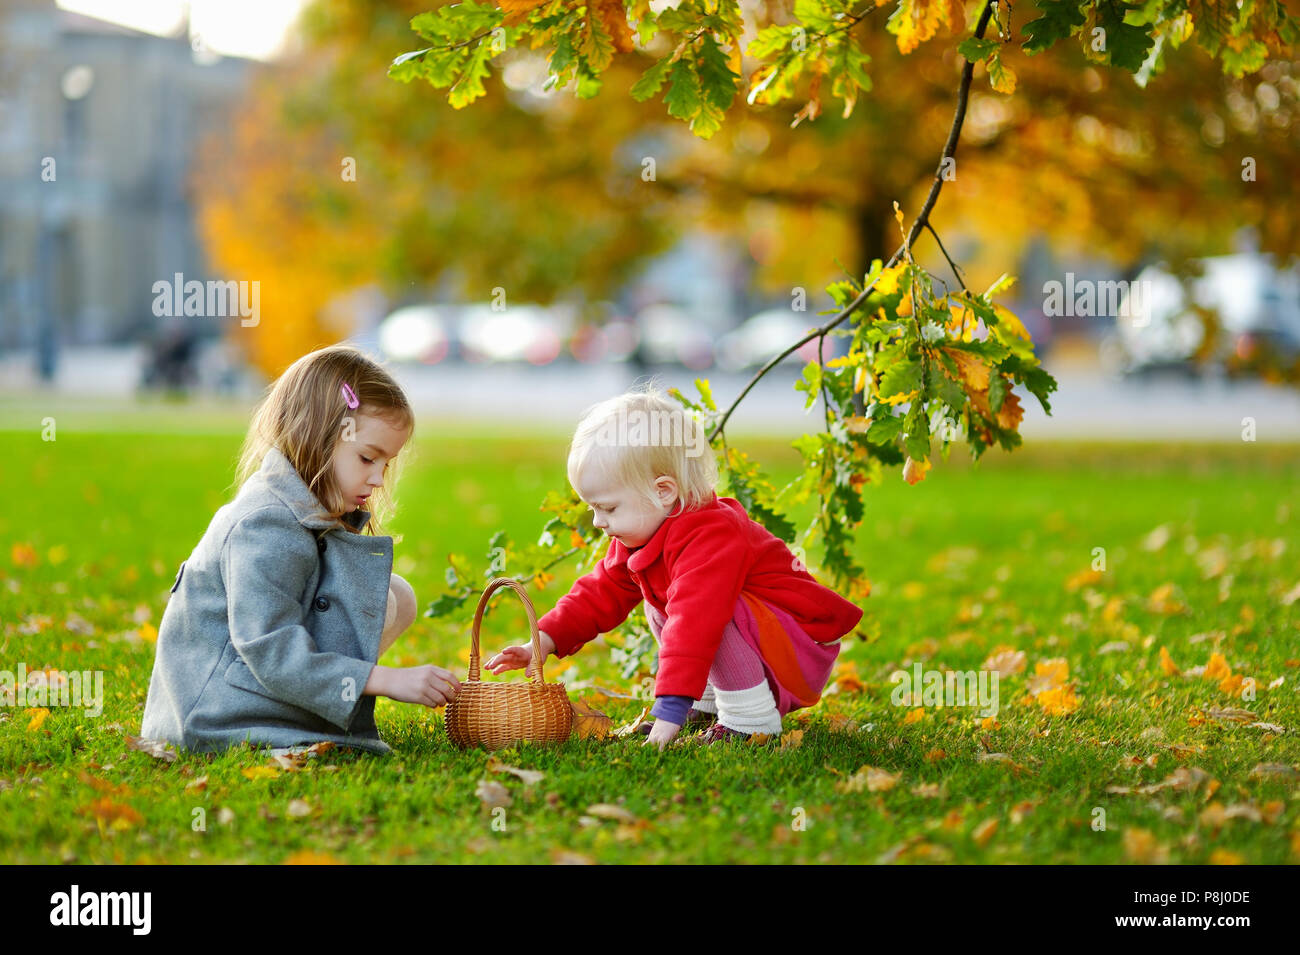 Little girls gathering acorns for crafting and playing - Stock Image